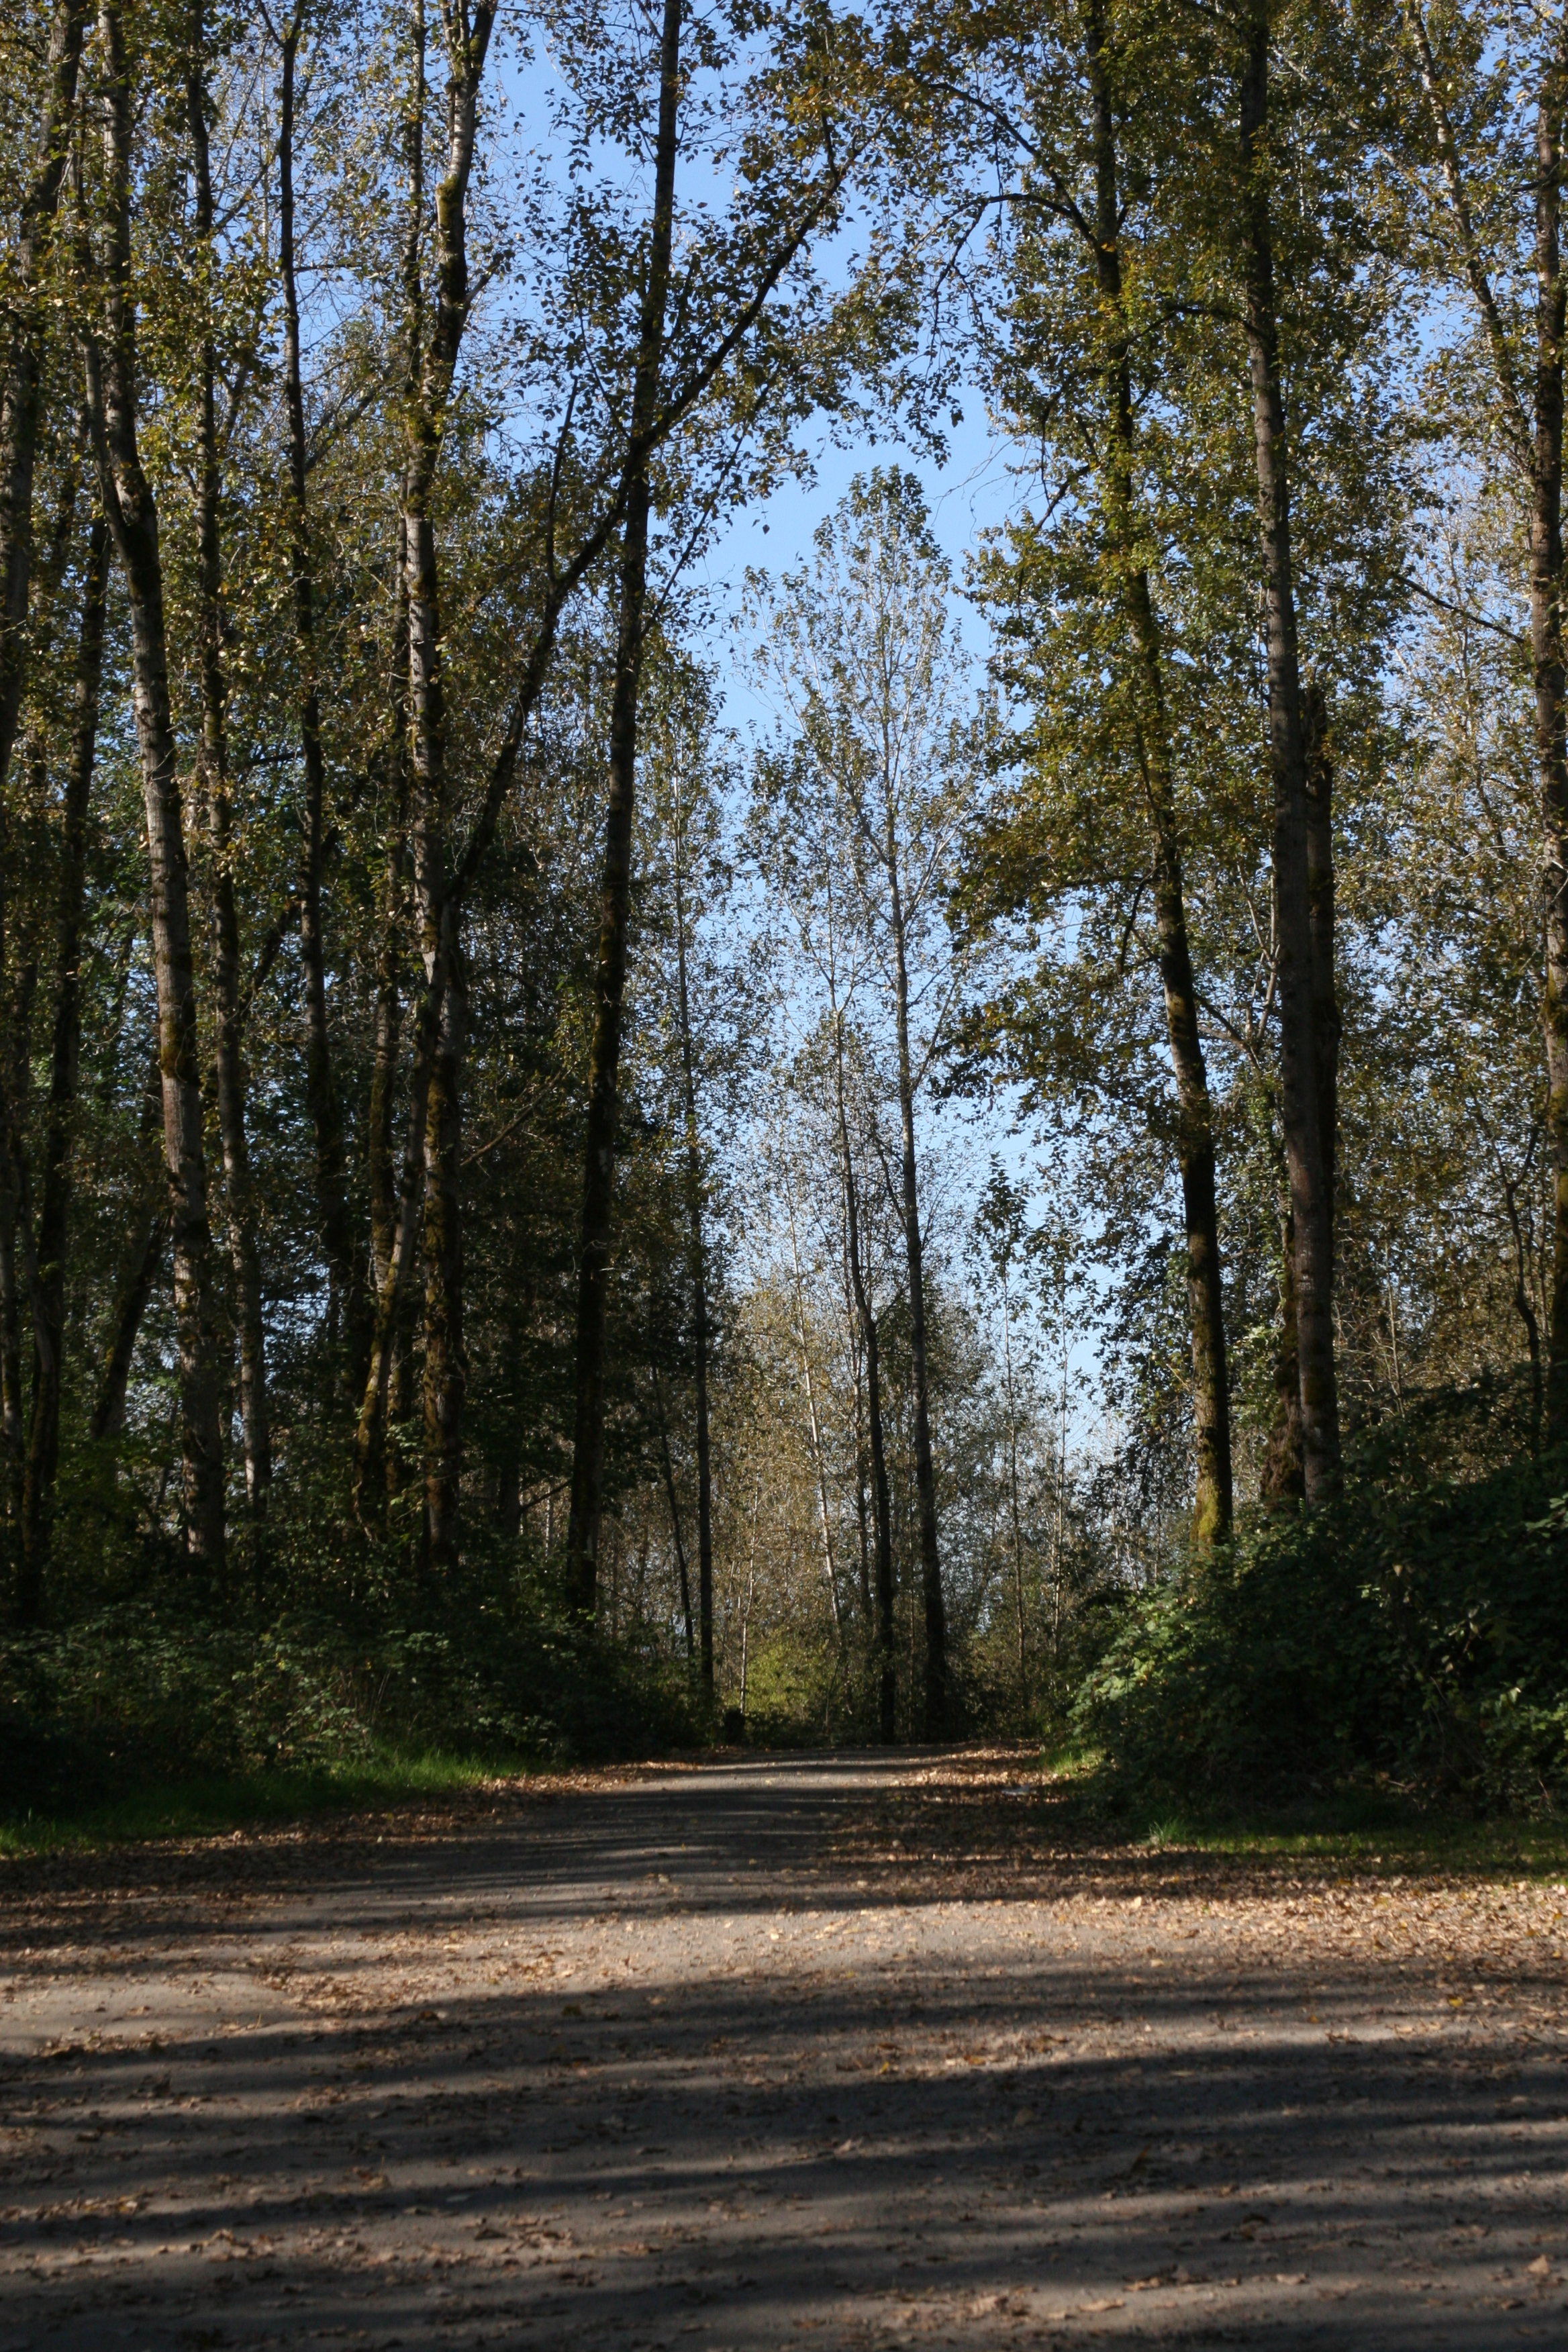 Path through autumn wood on Sauvie Island